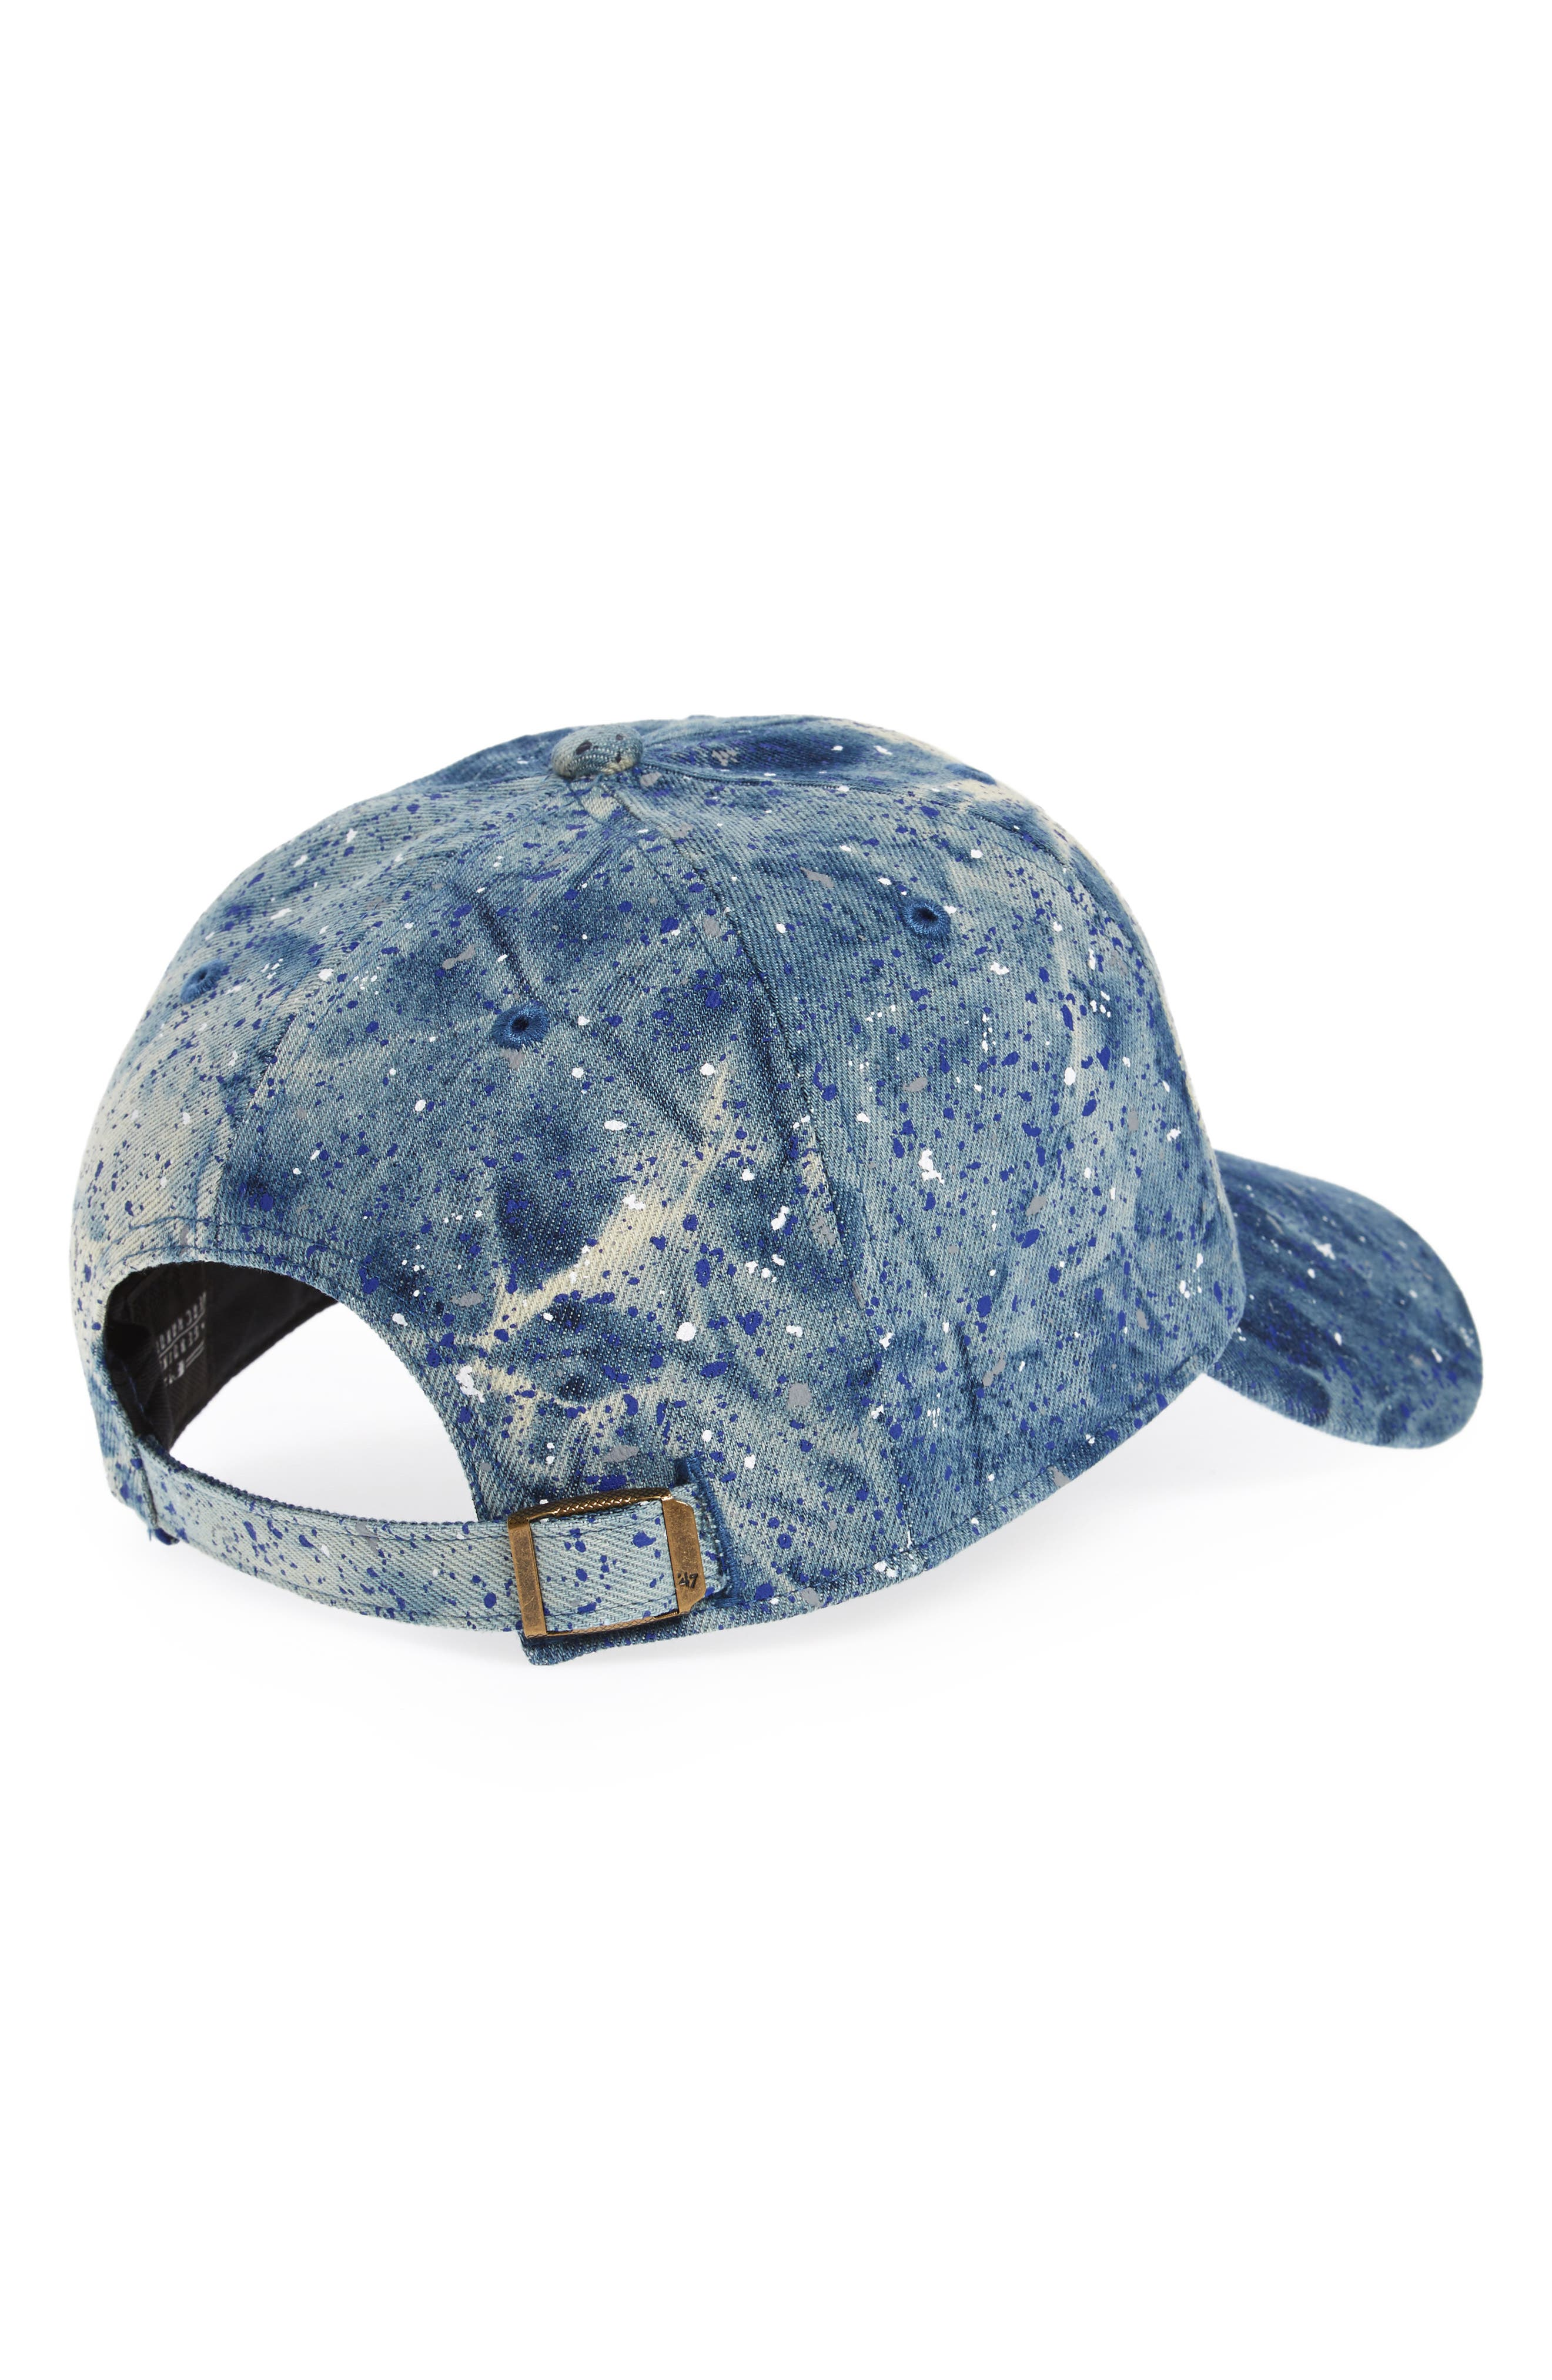 Los Angeles Dodgers - Blue Splatter Baseball Cap,                             Alternate thumbnail 2, color,                             400